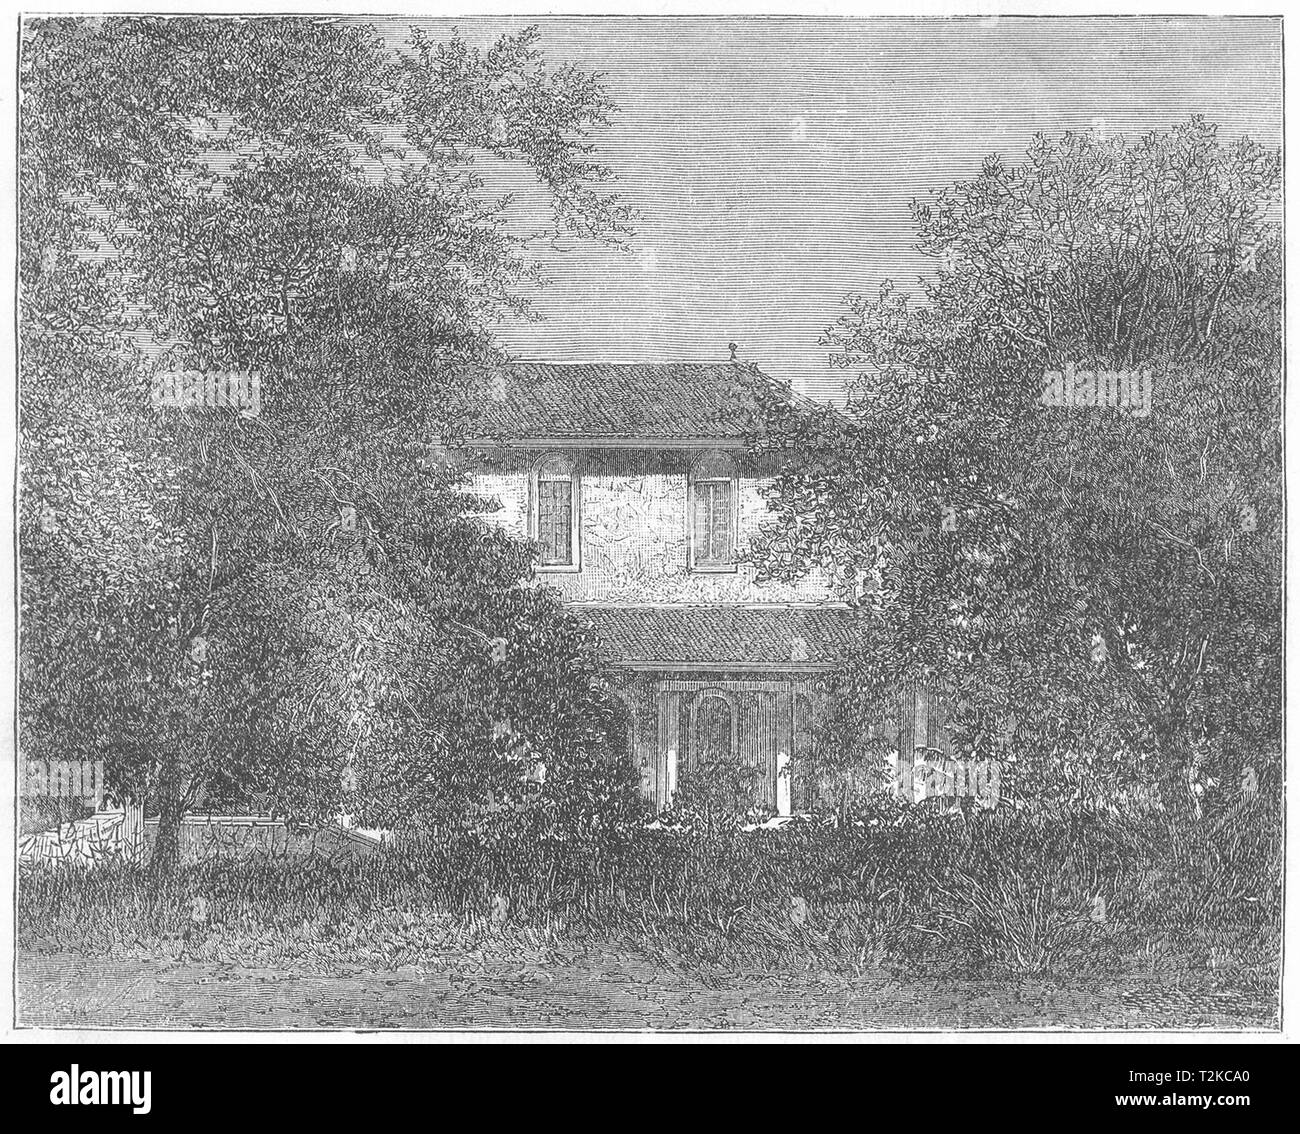 INDIA. A Bungalow at Ahmedabad, near Vadodara c1880 old antique print picture - Stock Image